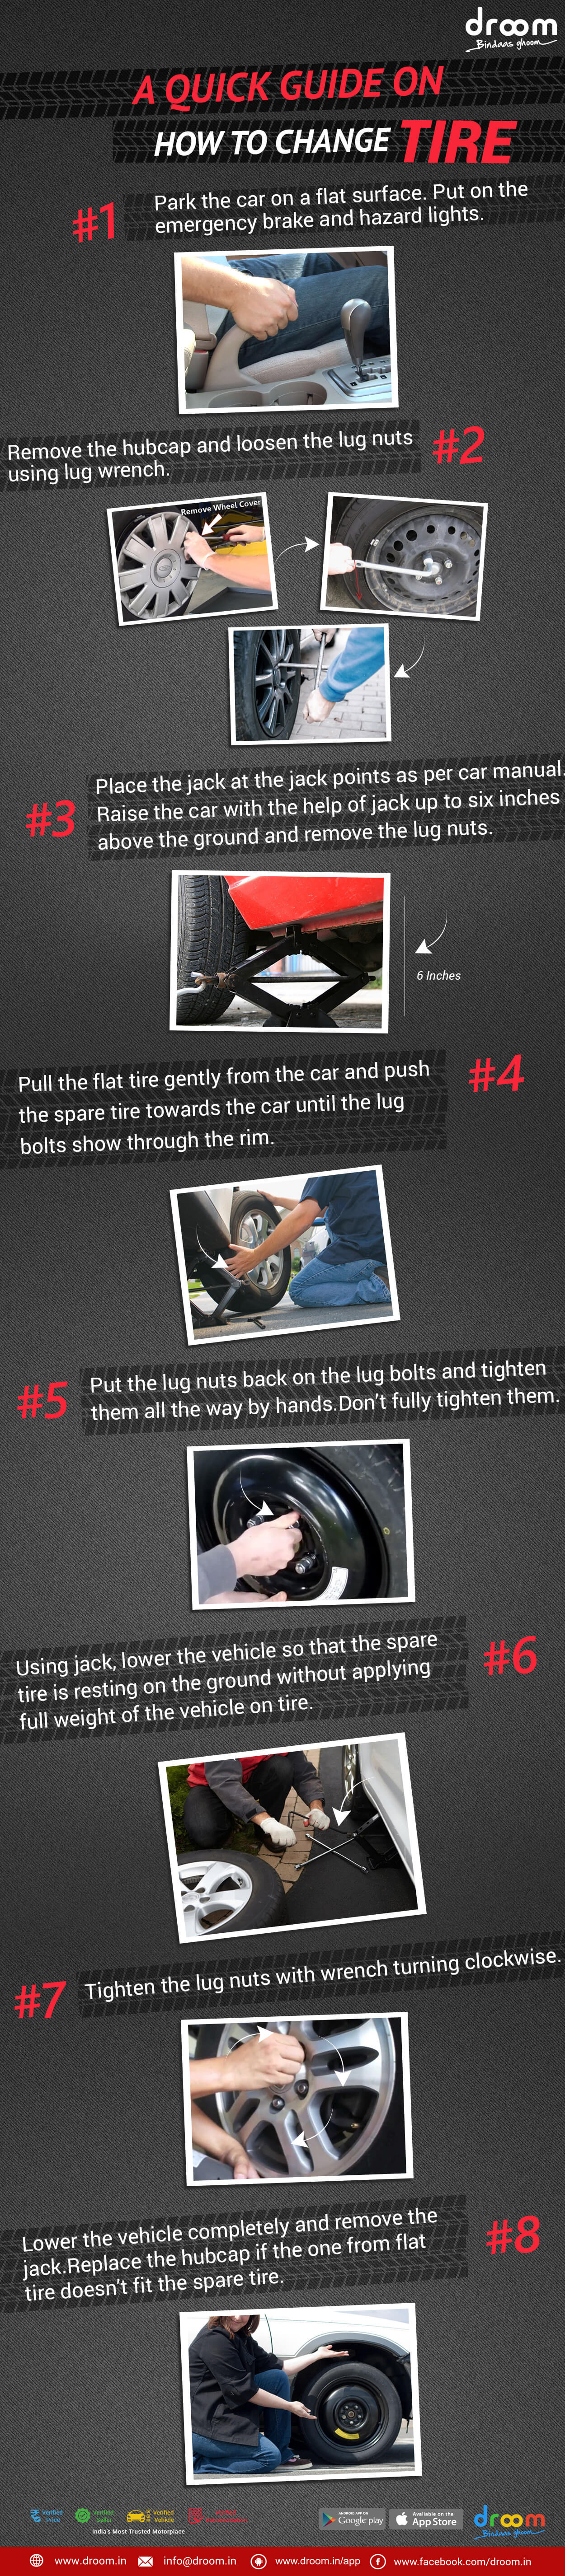 How-to-change-a-tyre-(1) (1)